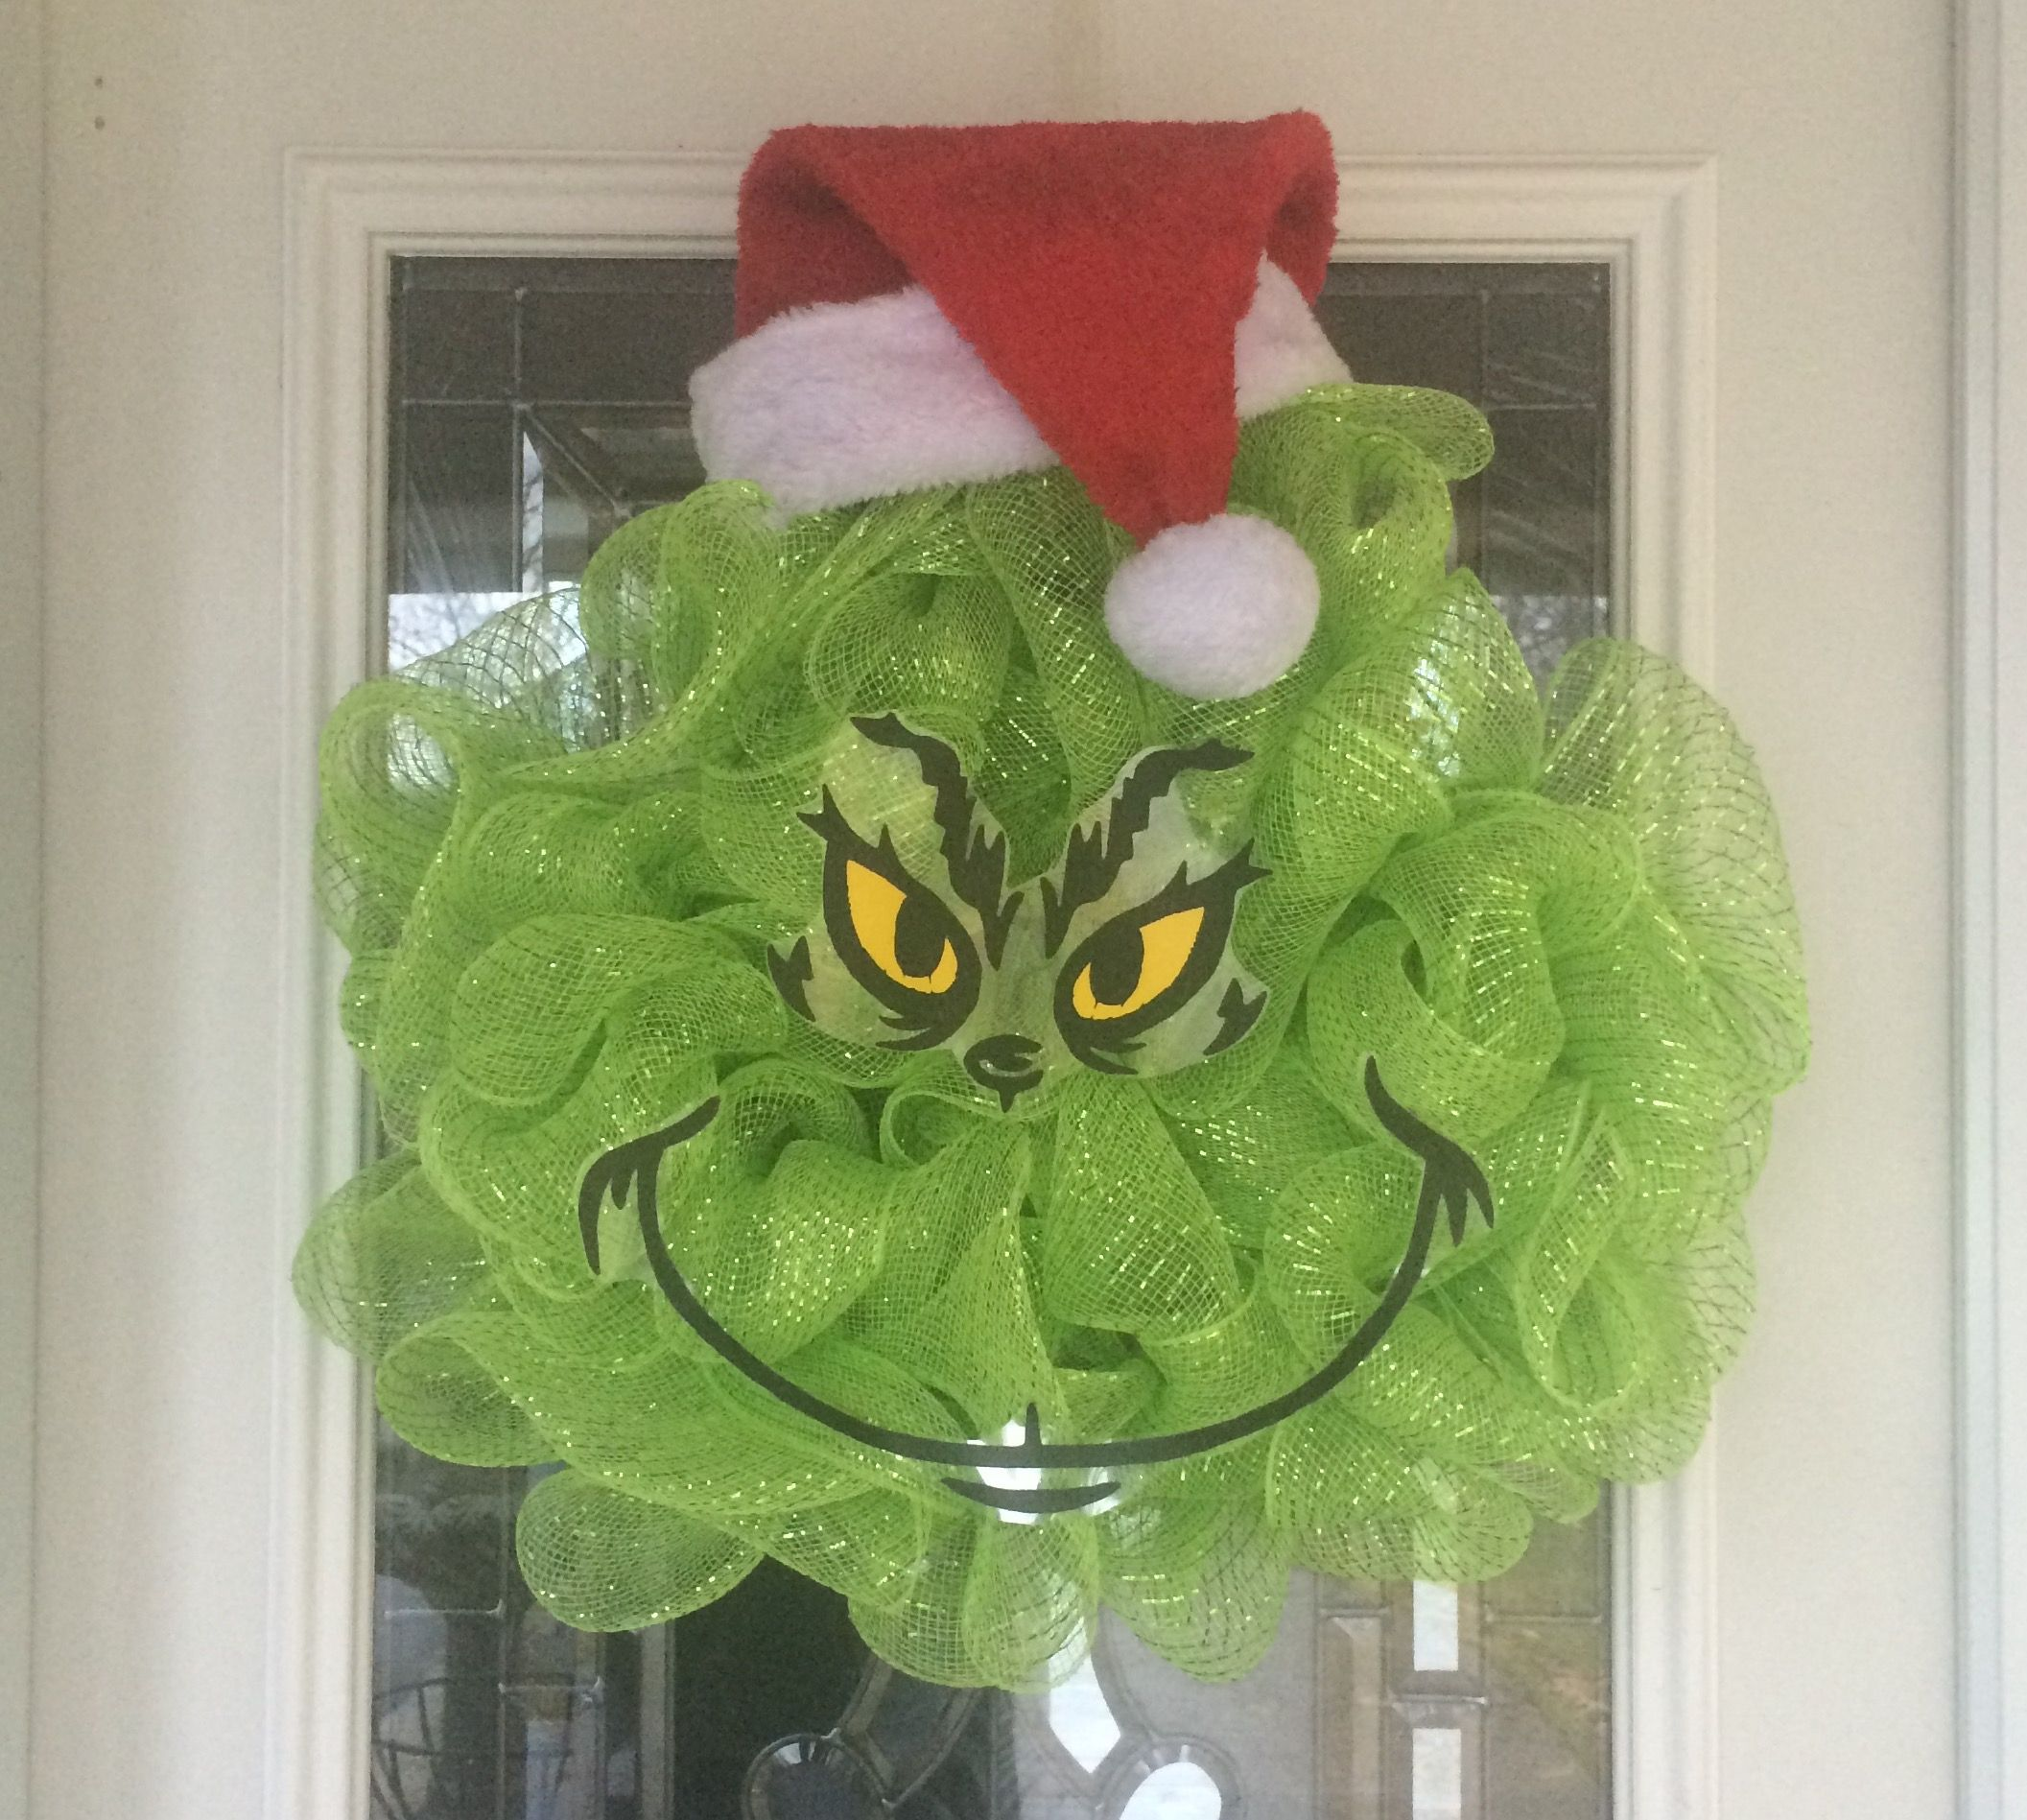 Christmas Decorations The Grinch: Raise Your Positive Vibration This Christmas With These